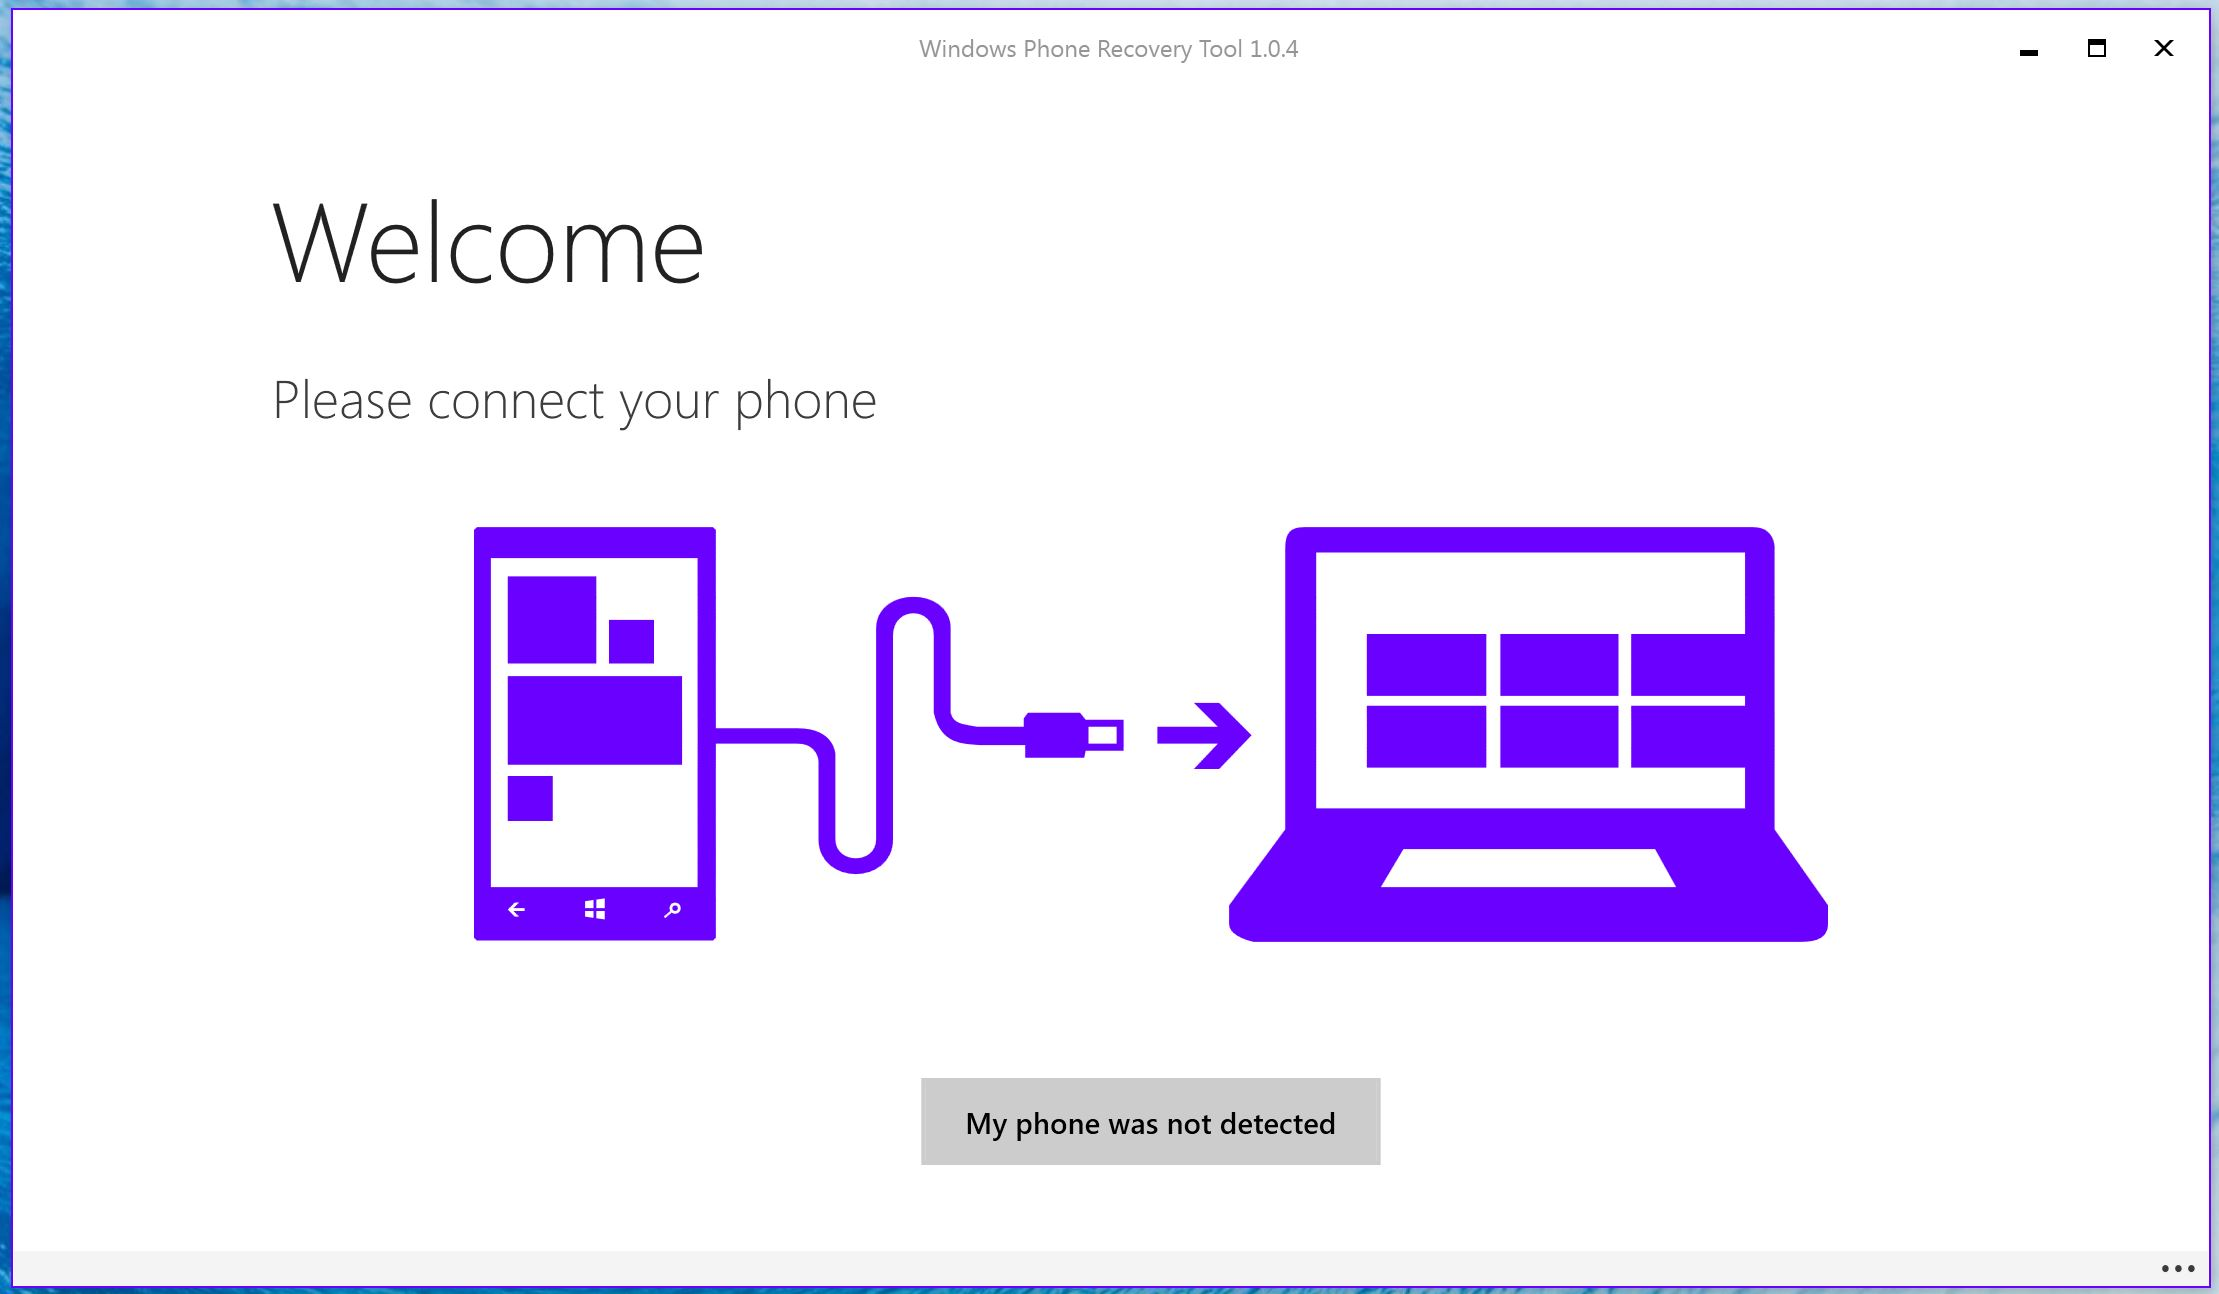 Windows Phone Recovery Tool 1